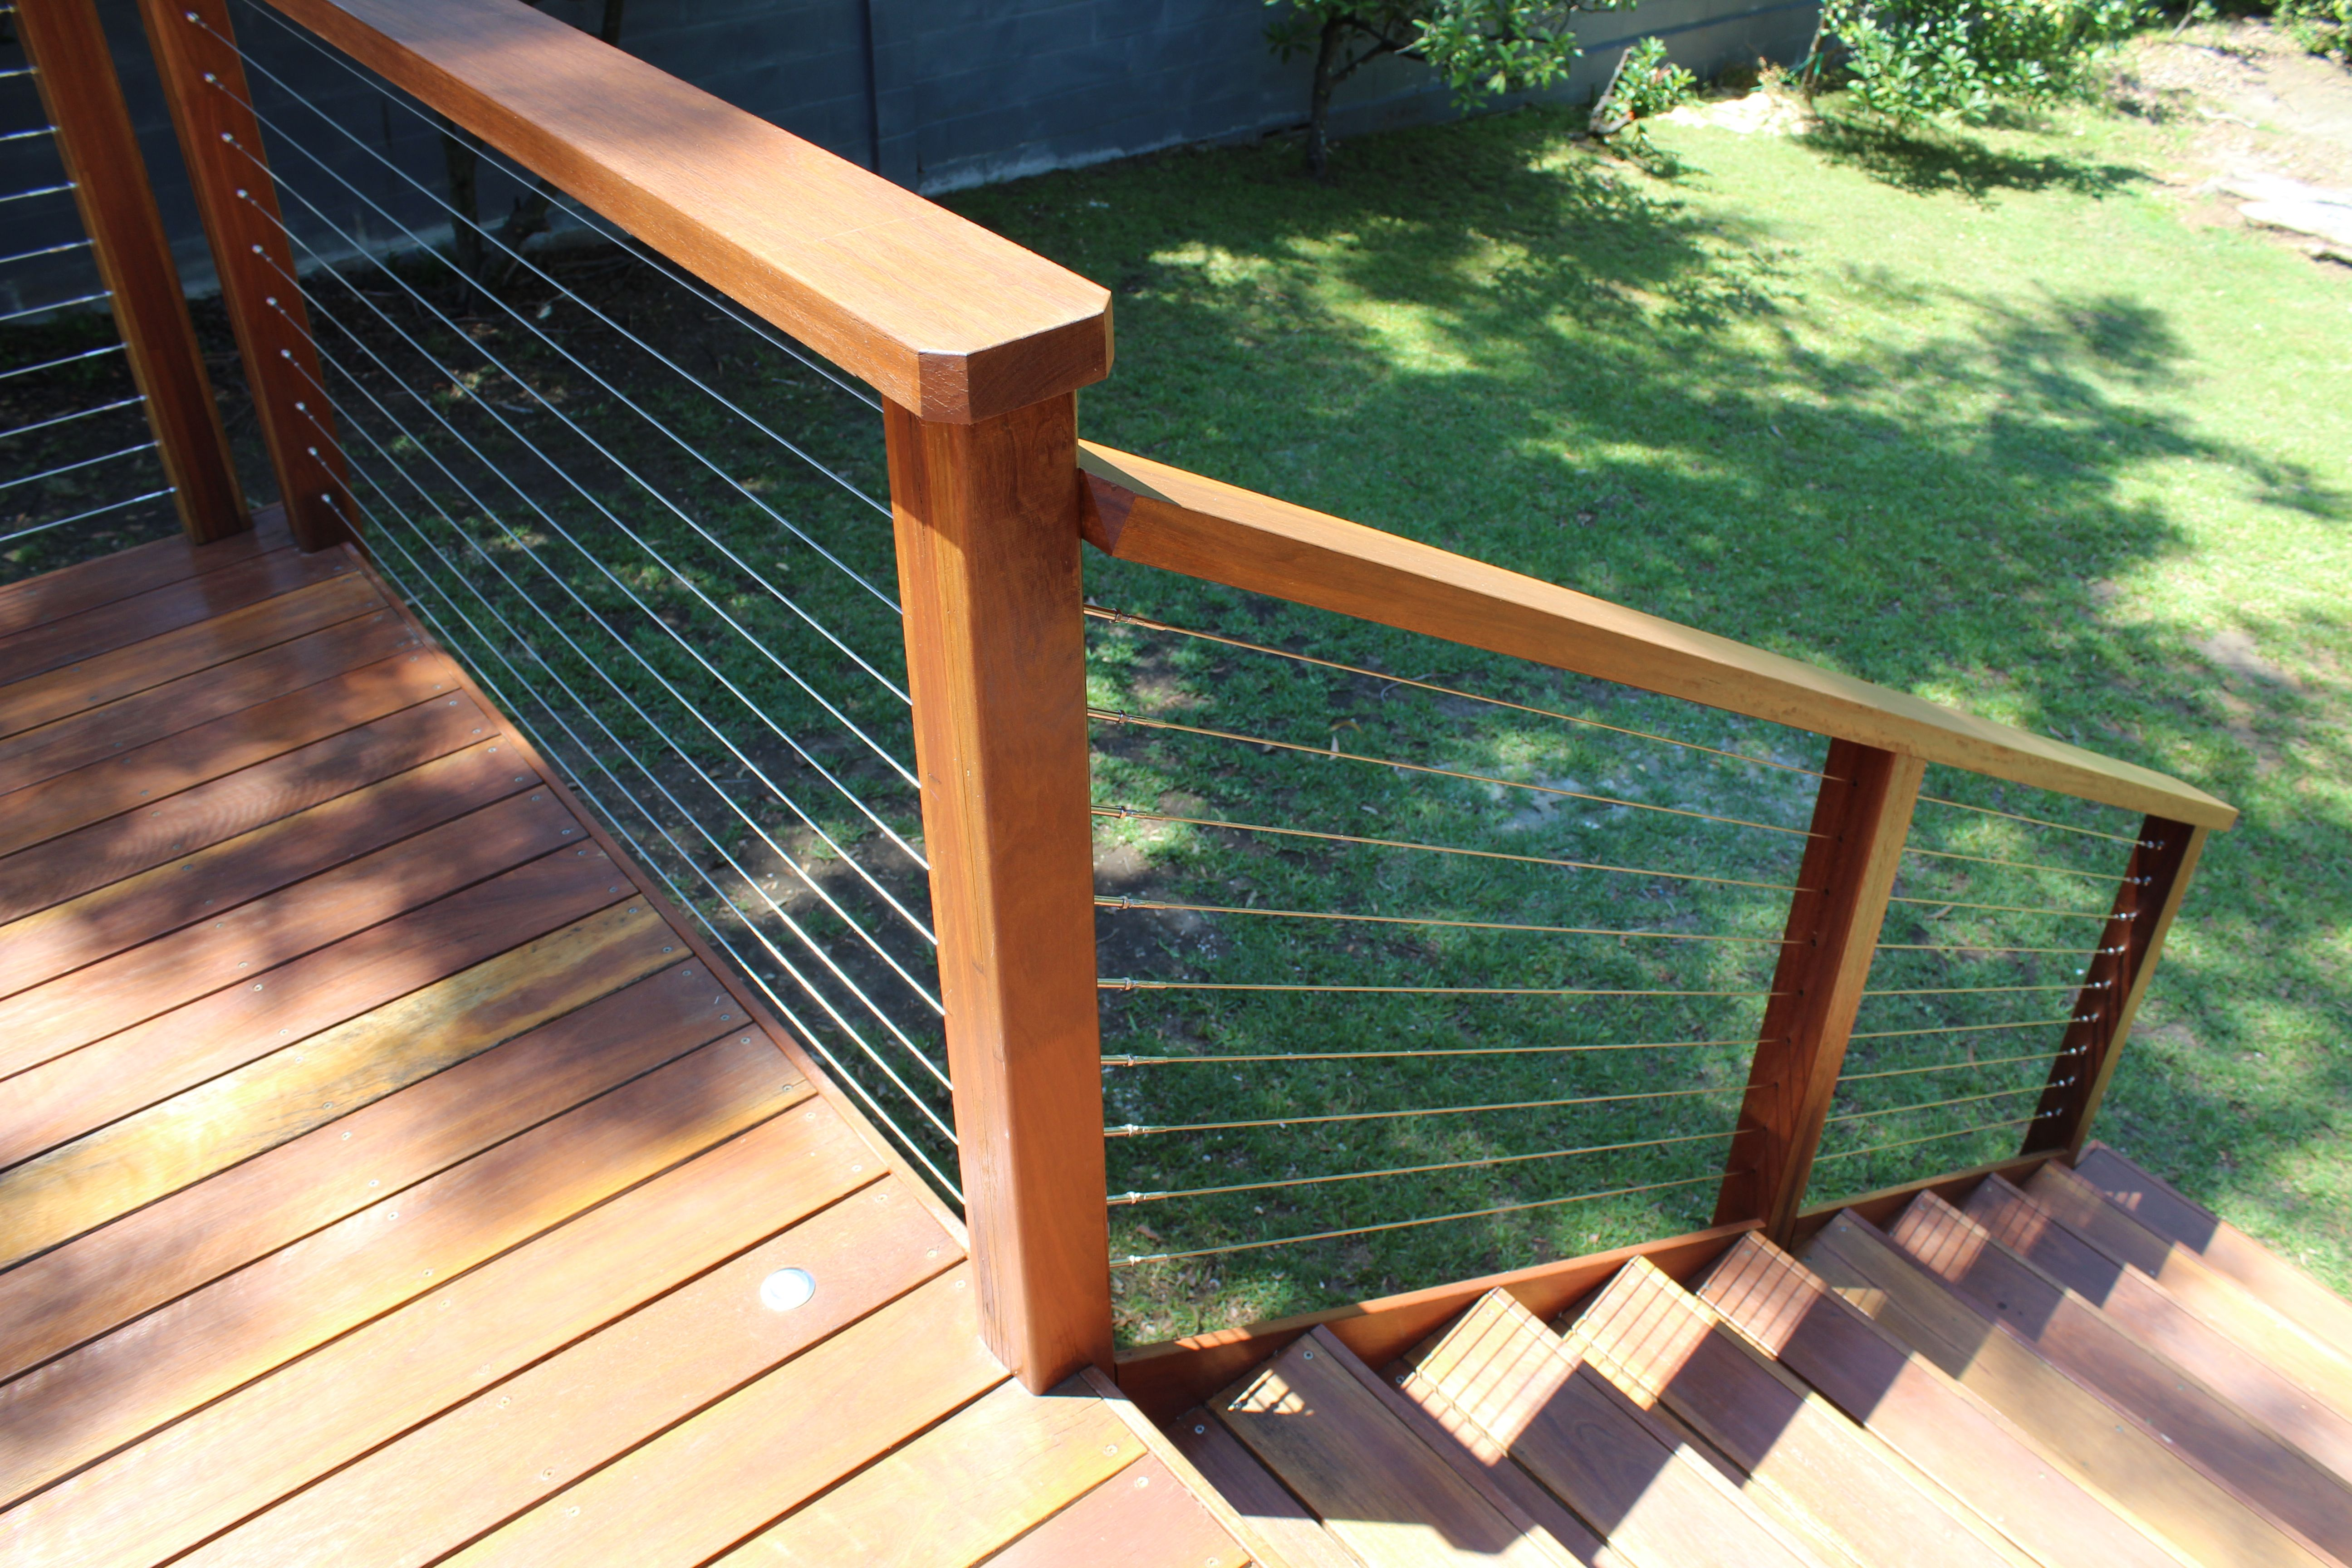 Harwood Balustrade With Stainless Steel Tension Wires